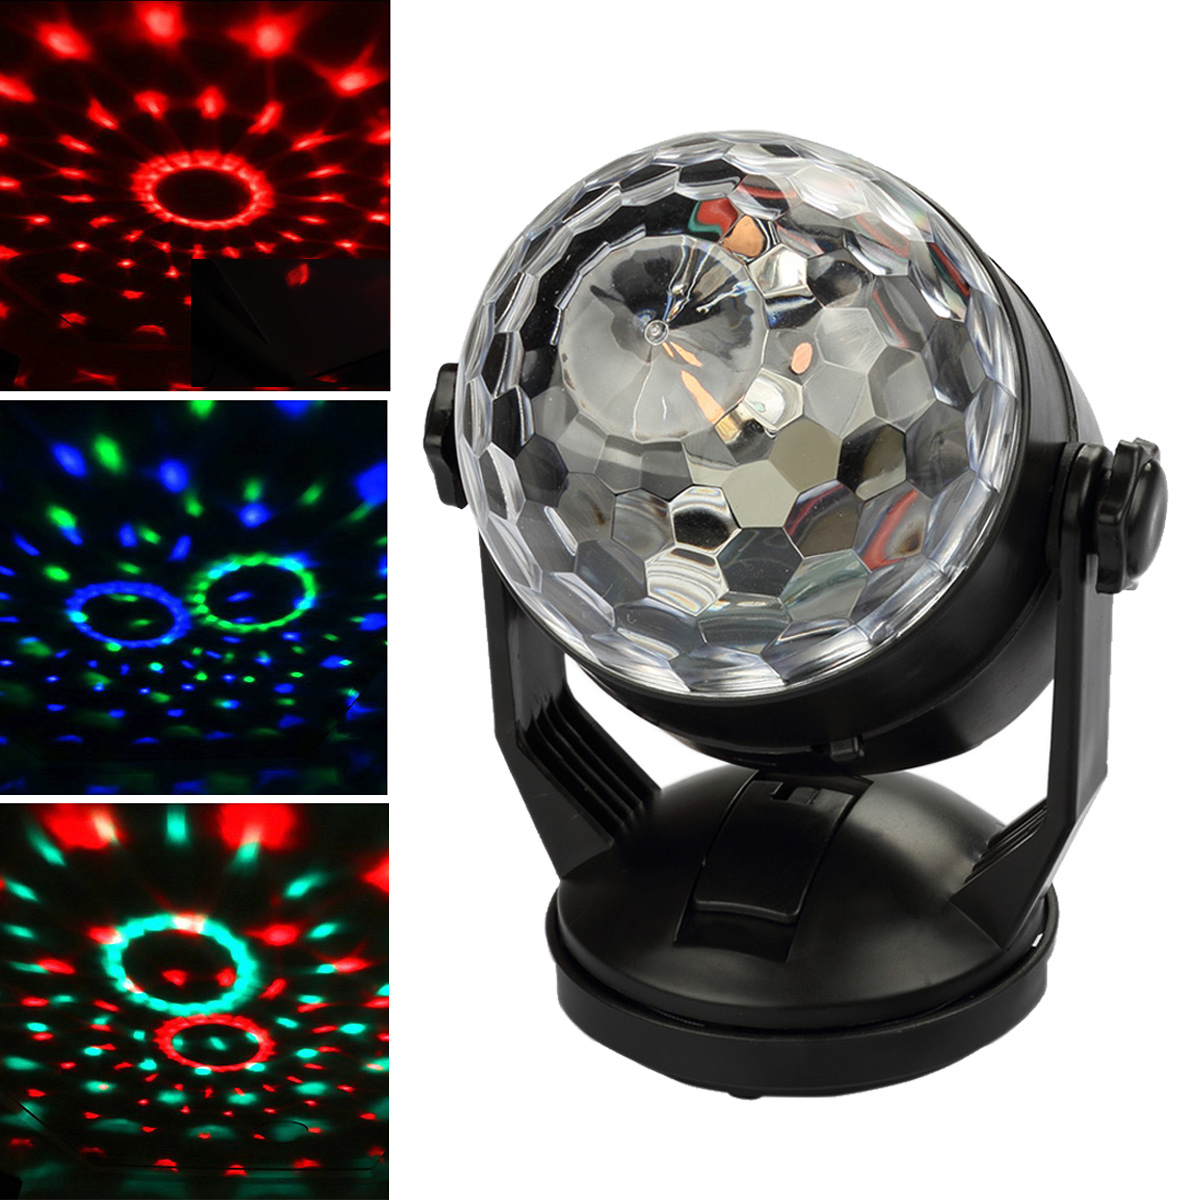 CoastaCloud 3W Mini RGB LED Crystal Magic Ball Stage Lighting Effect Lamp Bulb Party Disco Club DJ Light for Halloween... by CoastaCloud